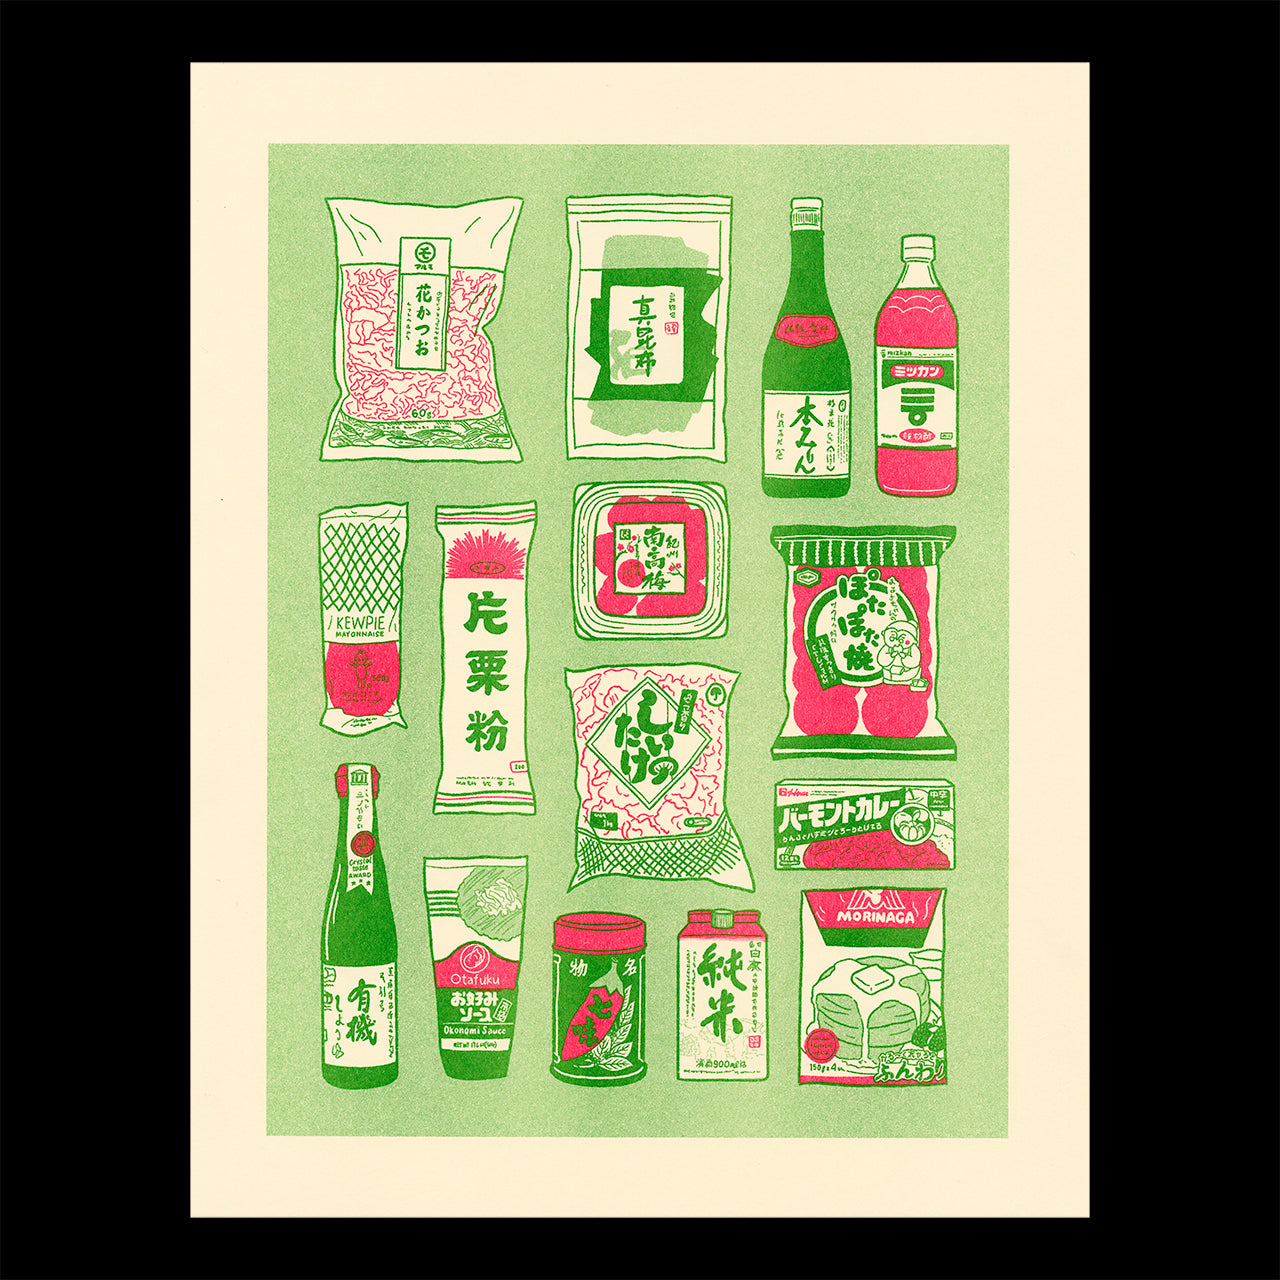 Risograph printed illustration showing common items found in the pantry of a Japanese home